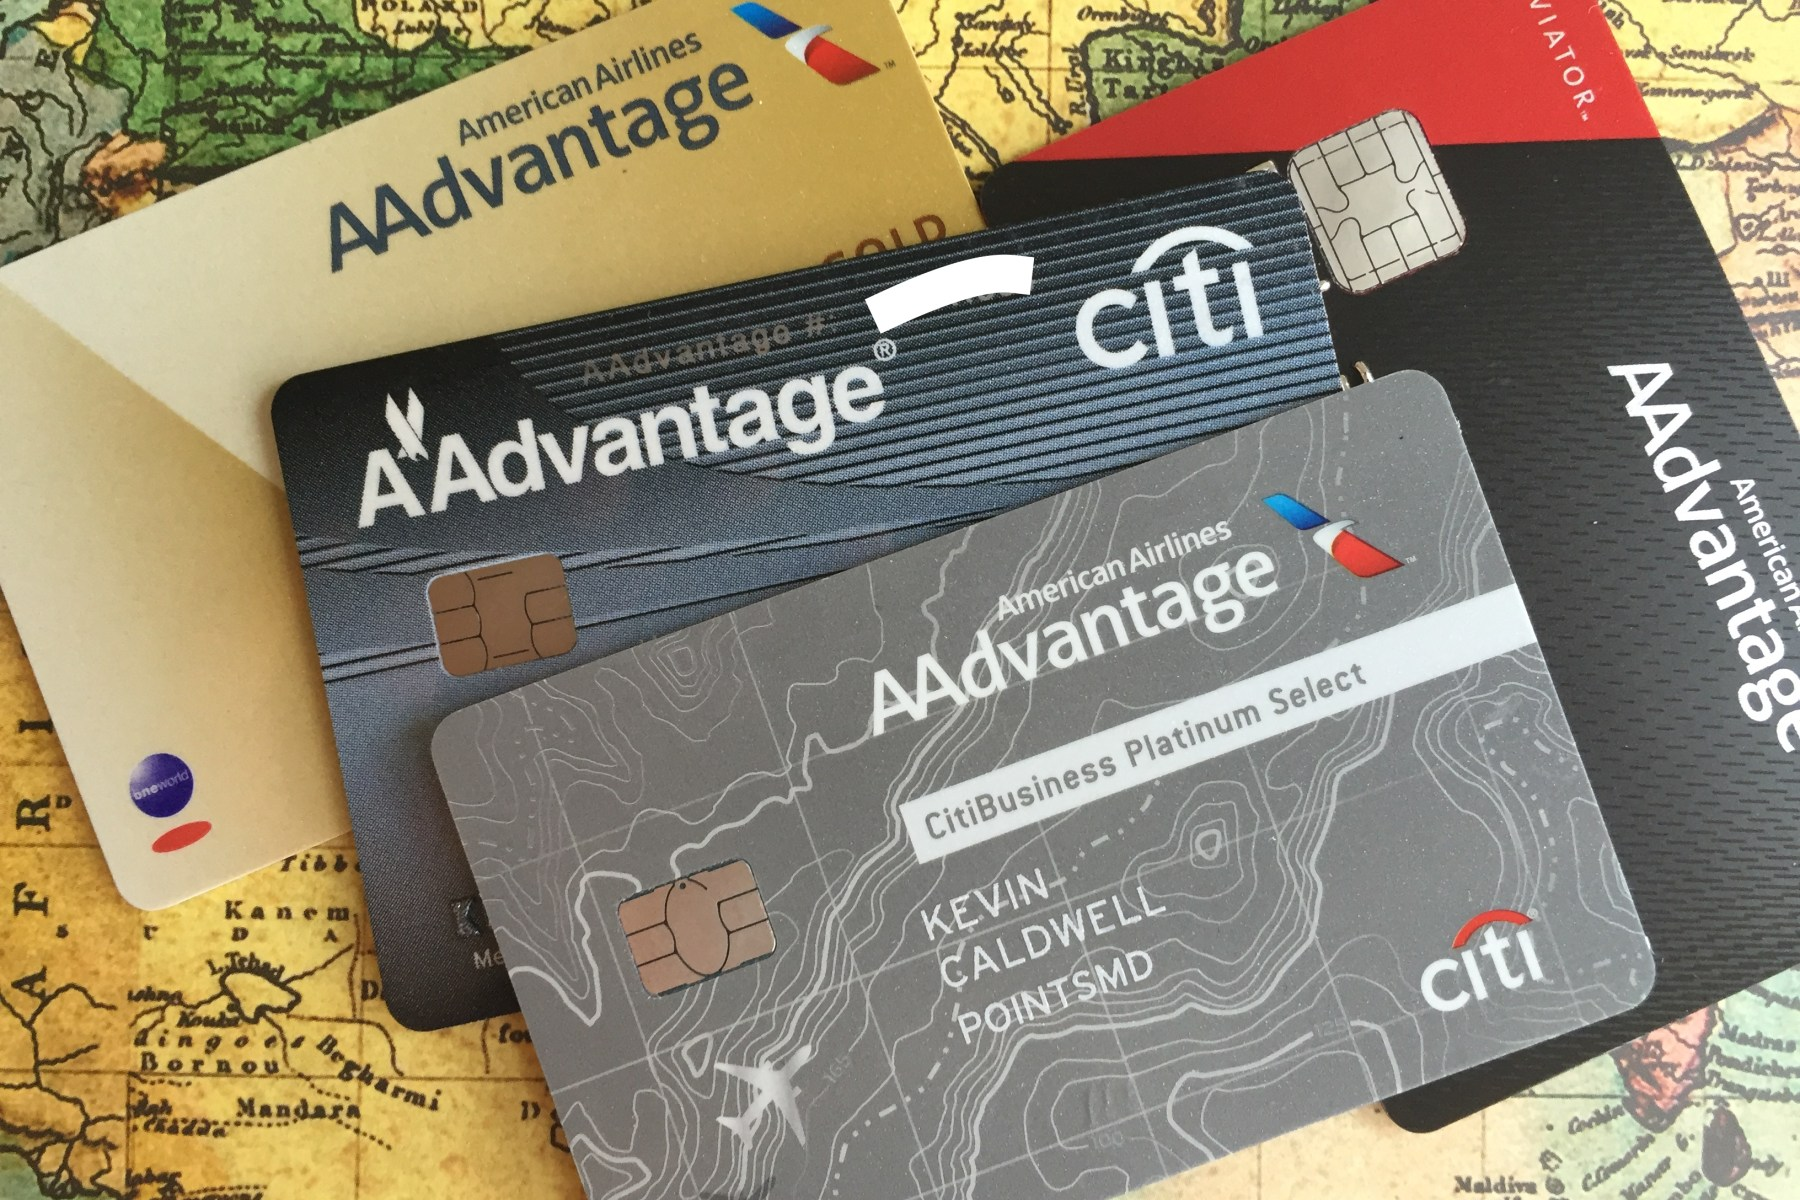 Get american airlines elite status with only credit card spend reheart Choice Image